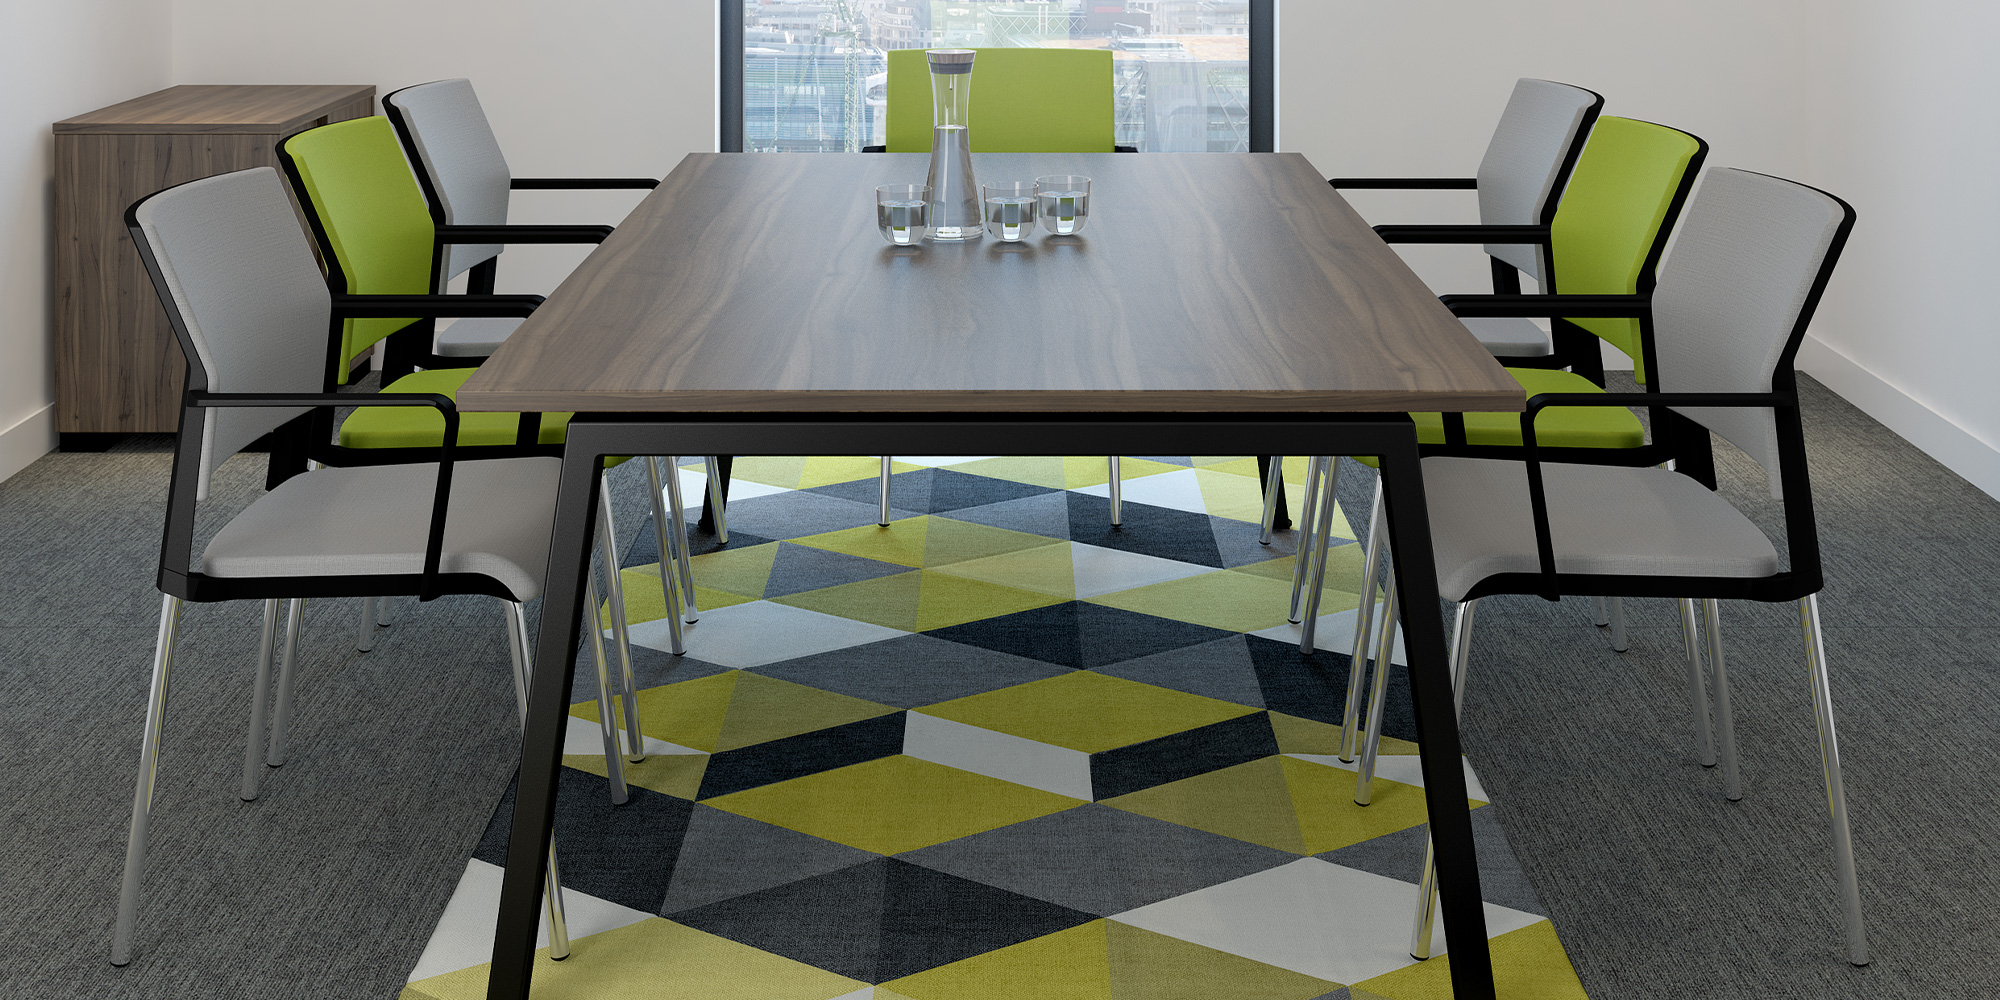 i-sit Meeting Chairs Roomset